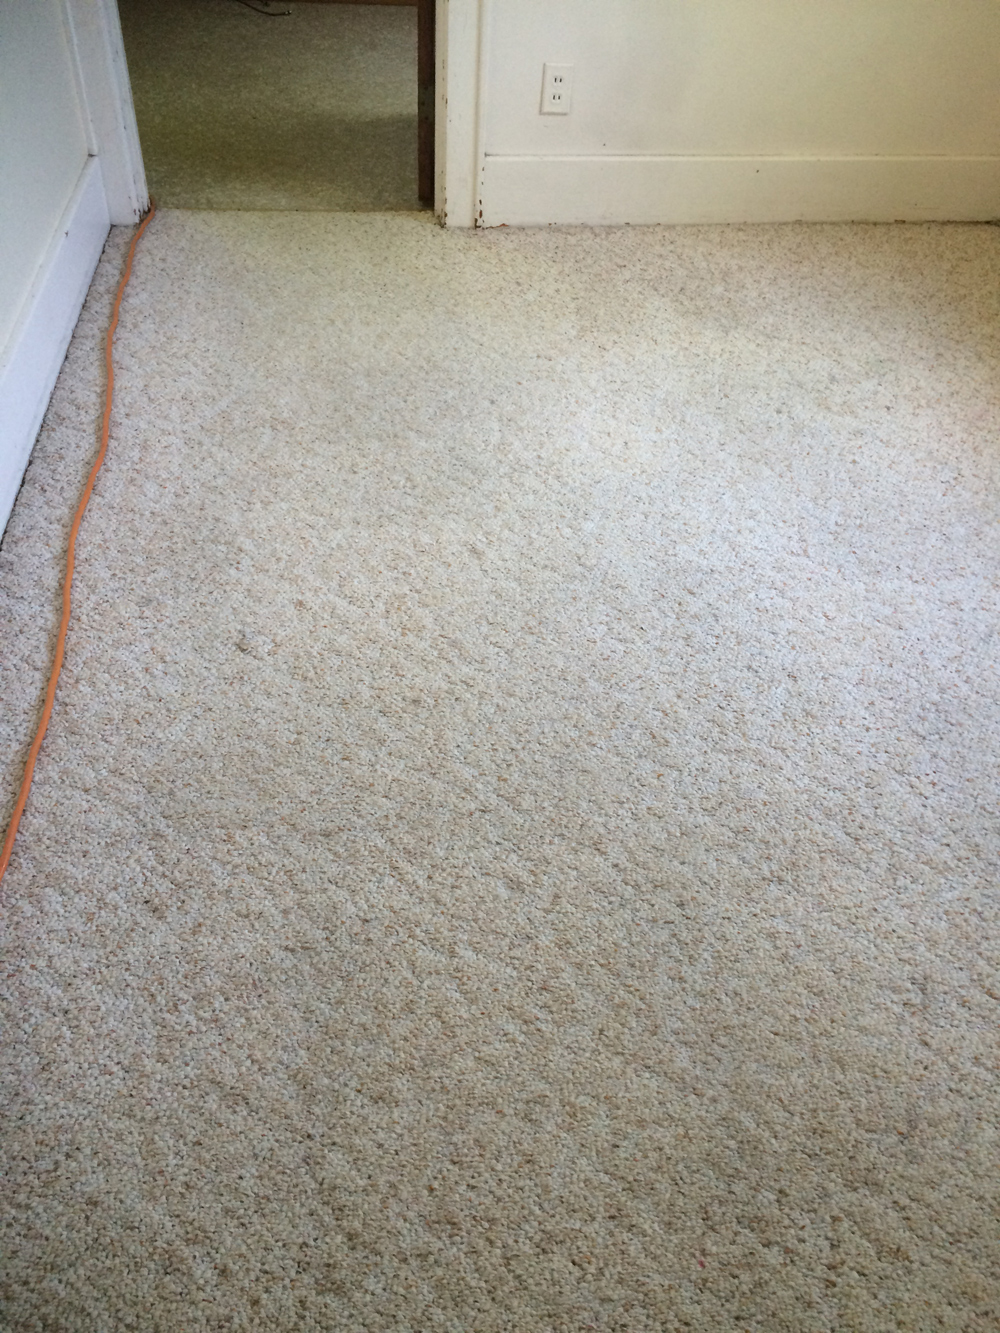 Carpet Cleaning - After